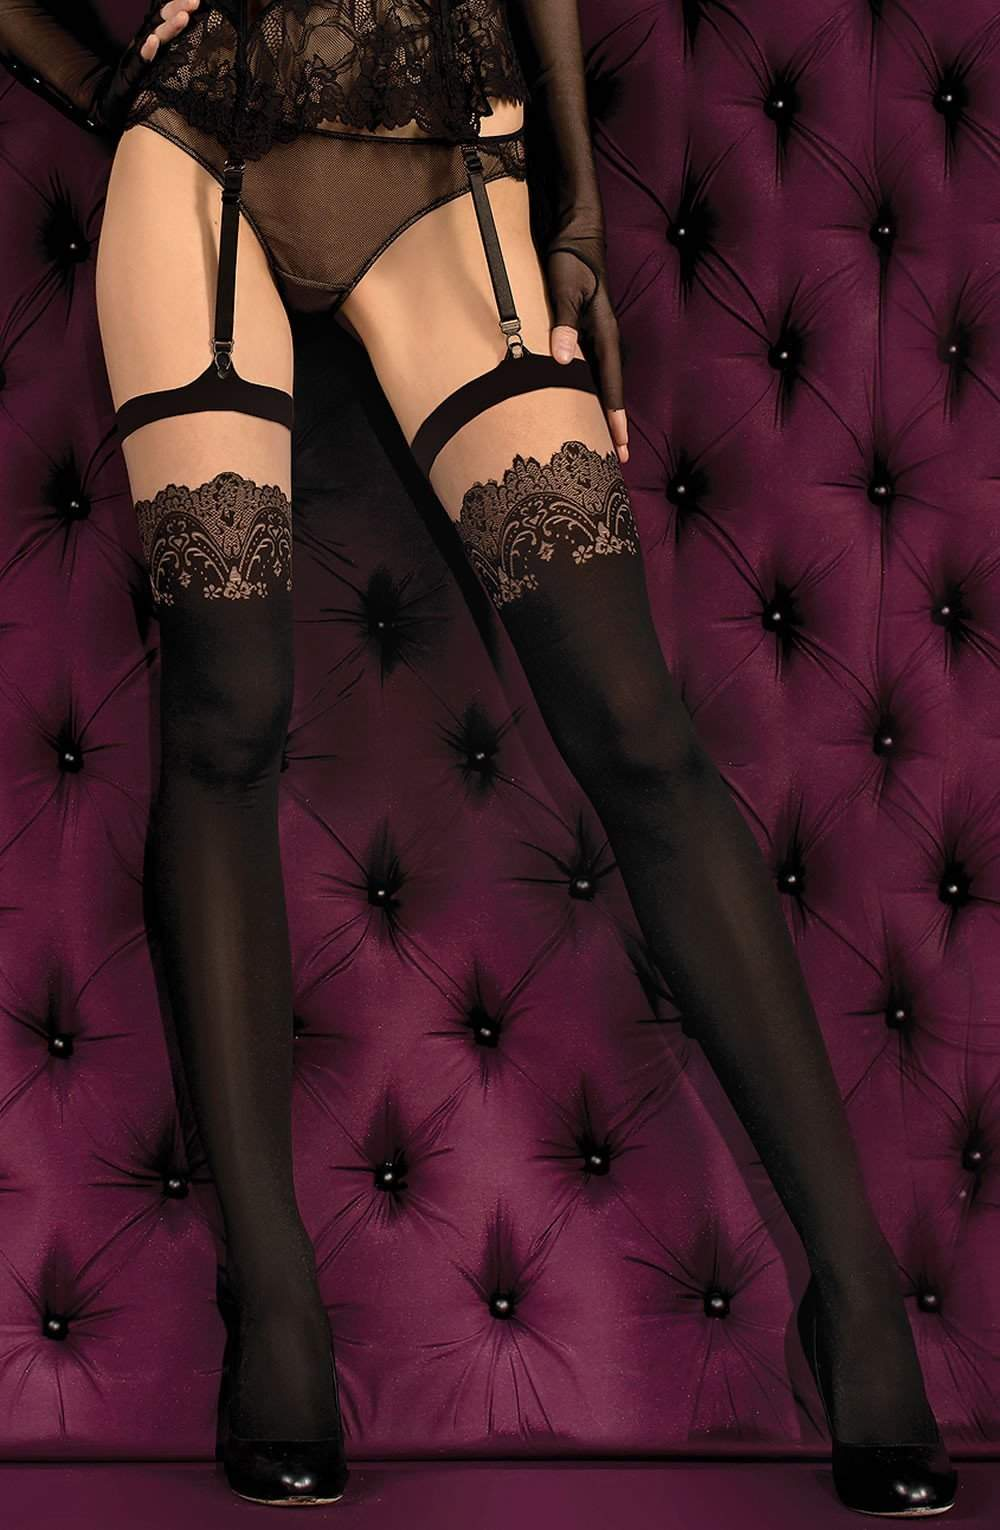 Ballerina 383 Stockings Nero (Black) Skin